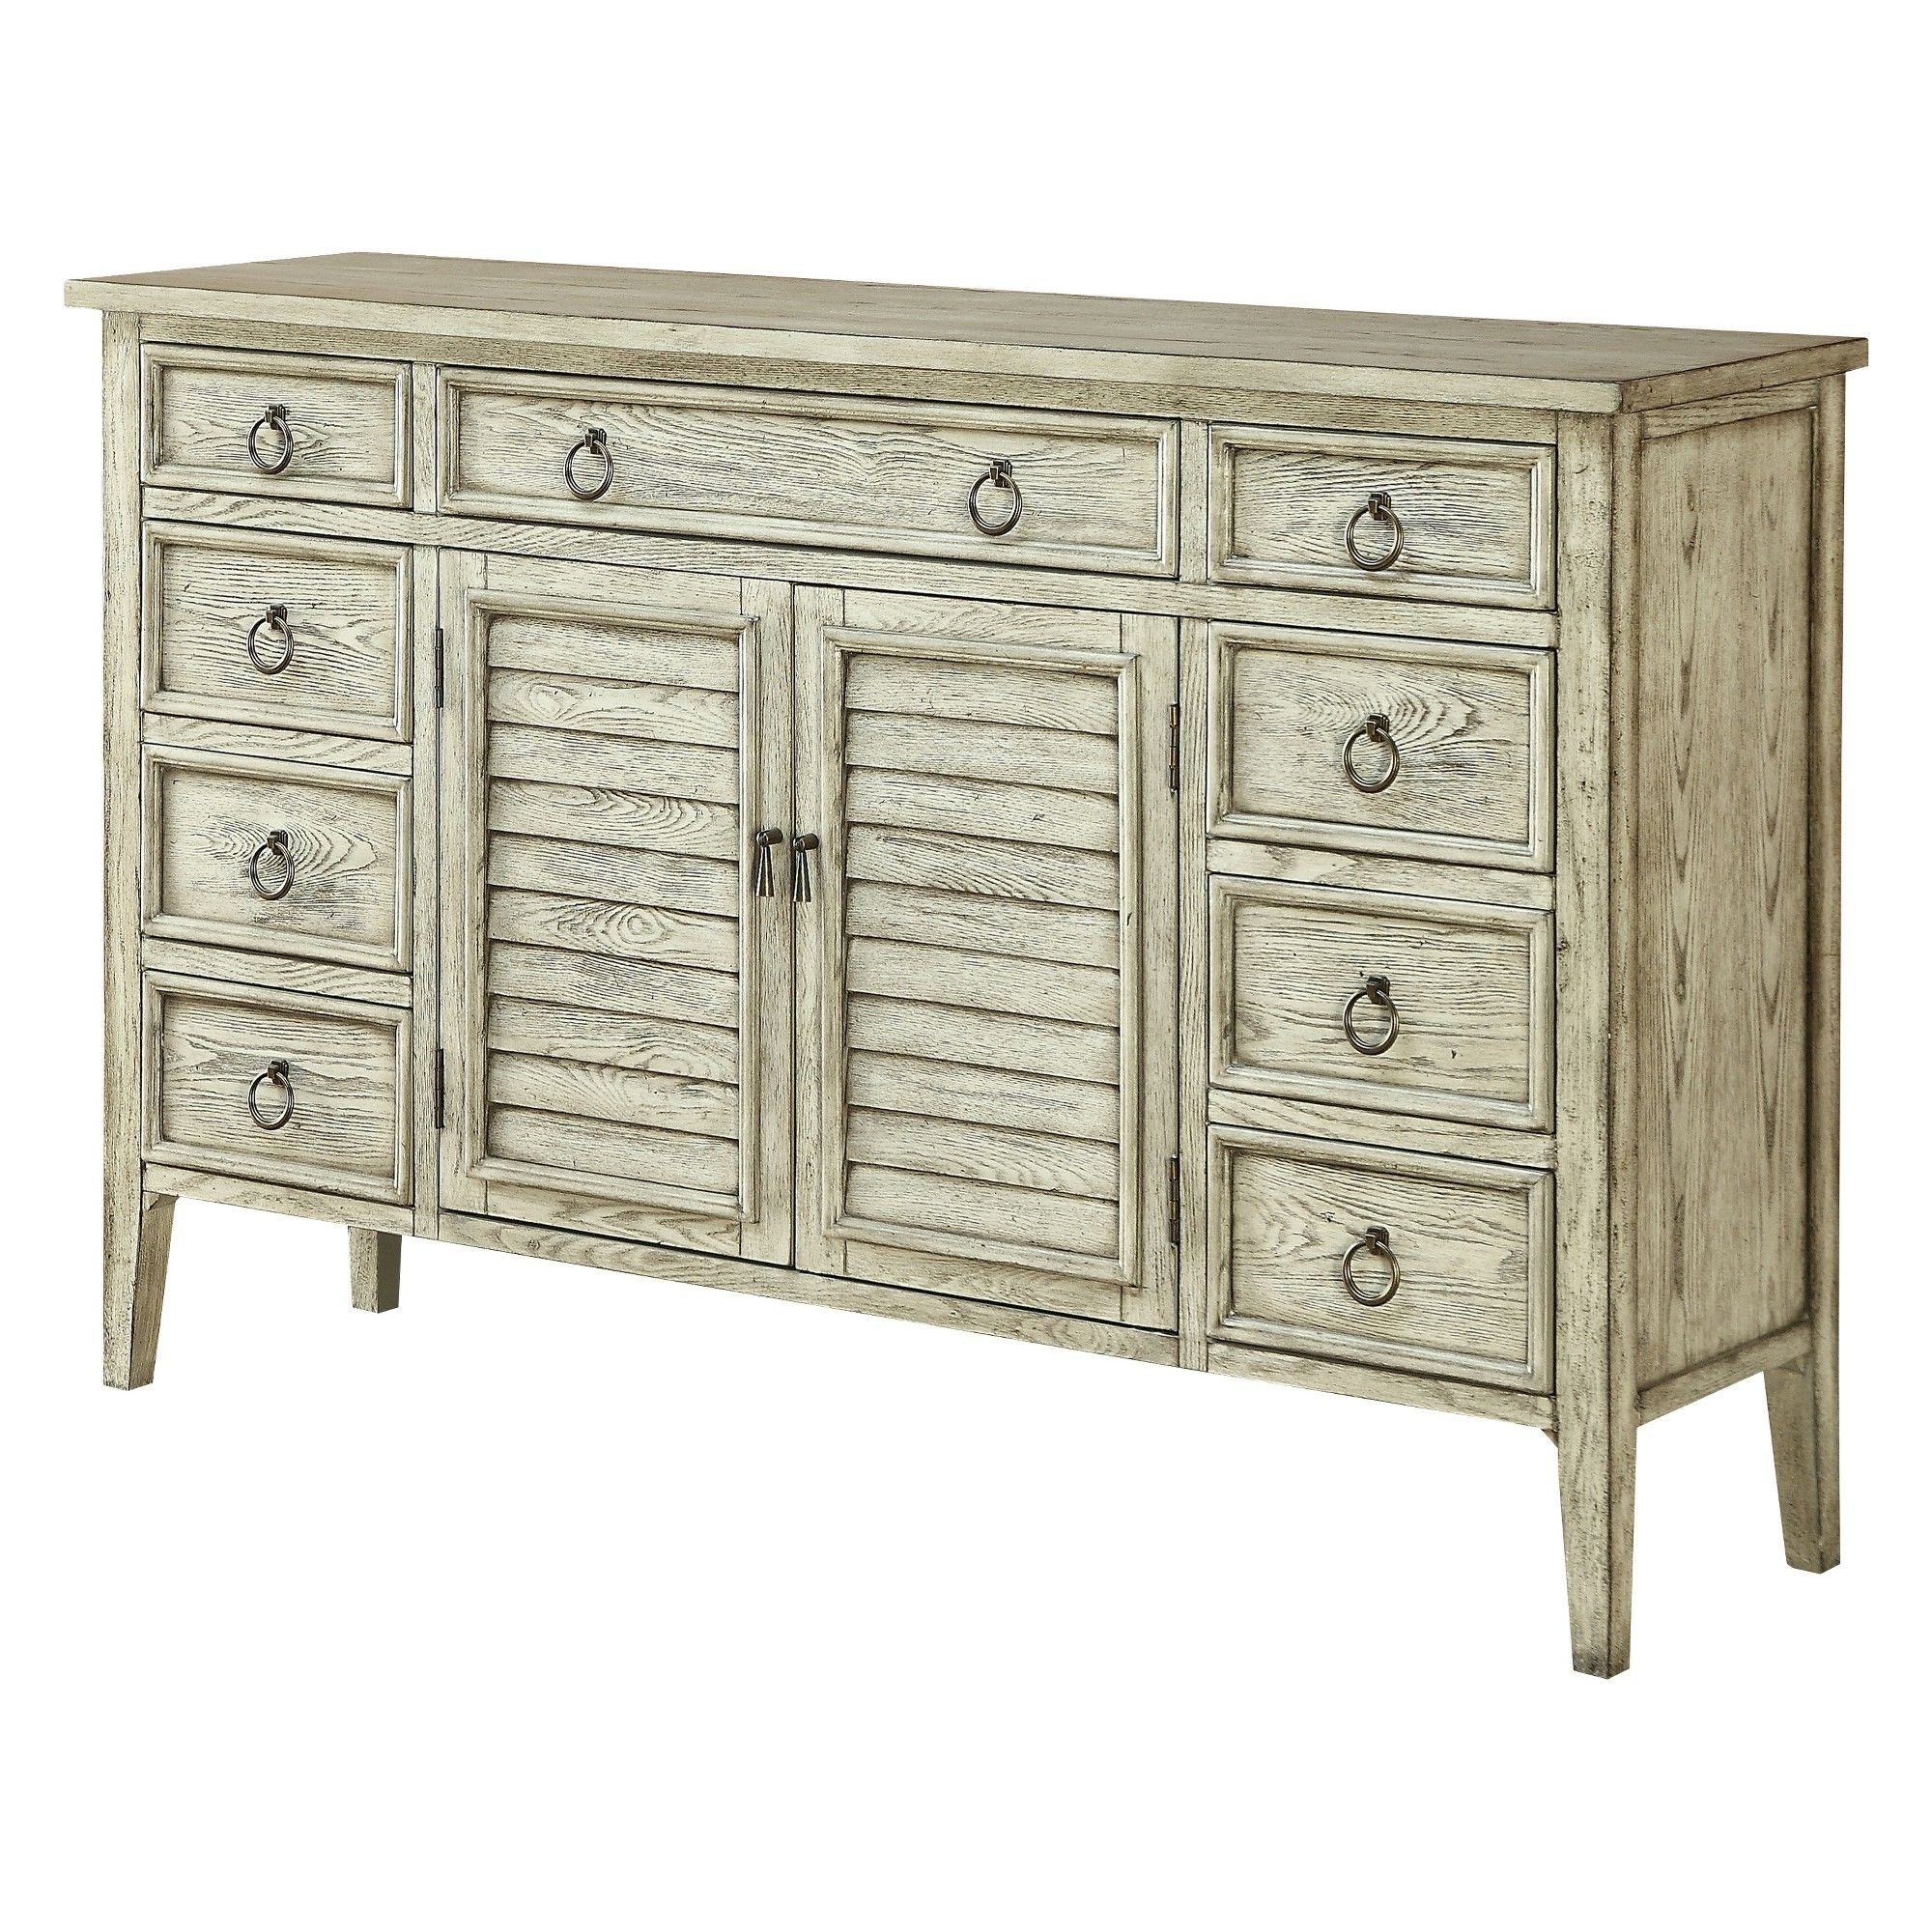 Christopher Knight Home Ivory Coast Credenza Ivory Rub Intended For Trendy Etienne Sideboards (Gallery 6 of 20)